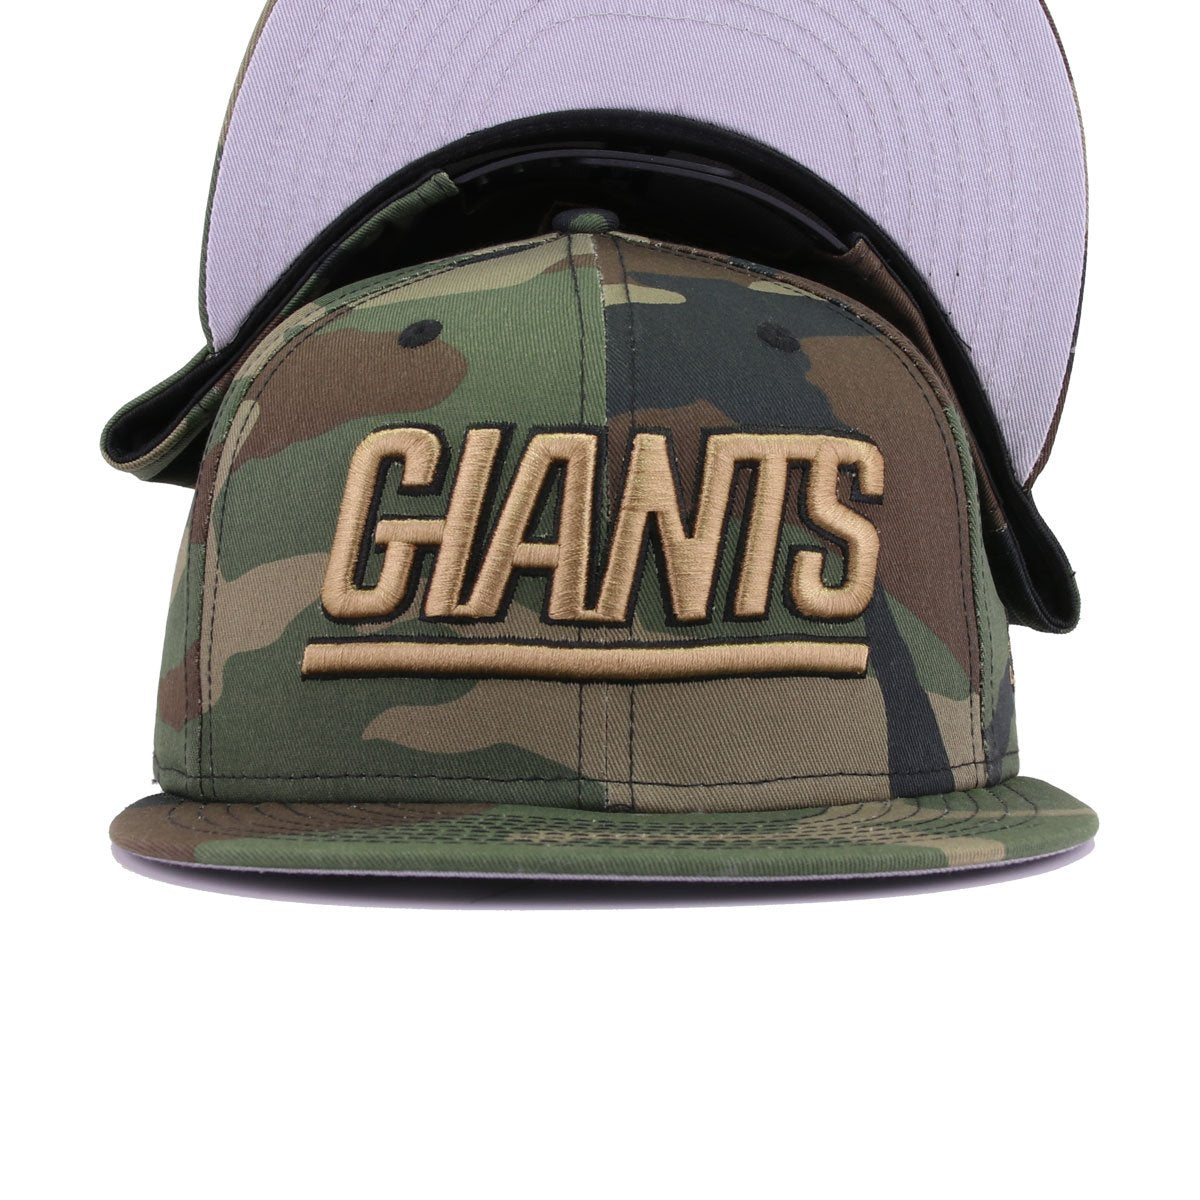 8a383dc63 ... hot new york giants woodland camouflage wordmark new era 9fifty  snapback 5f258 ffdb6